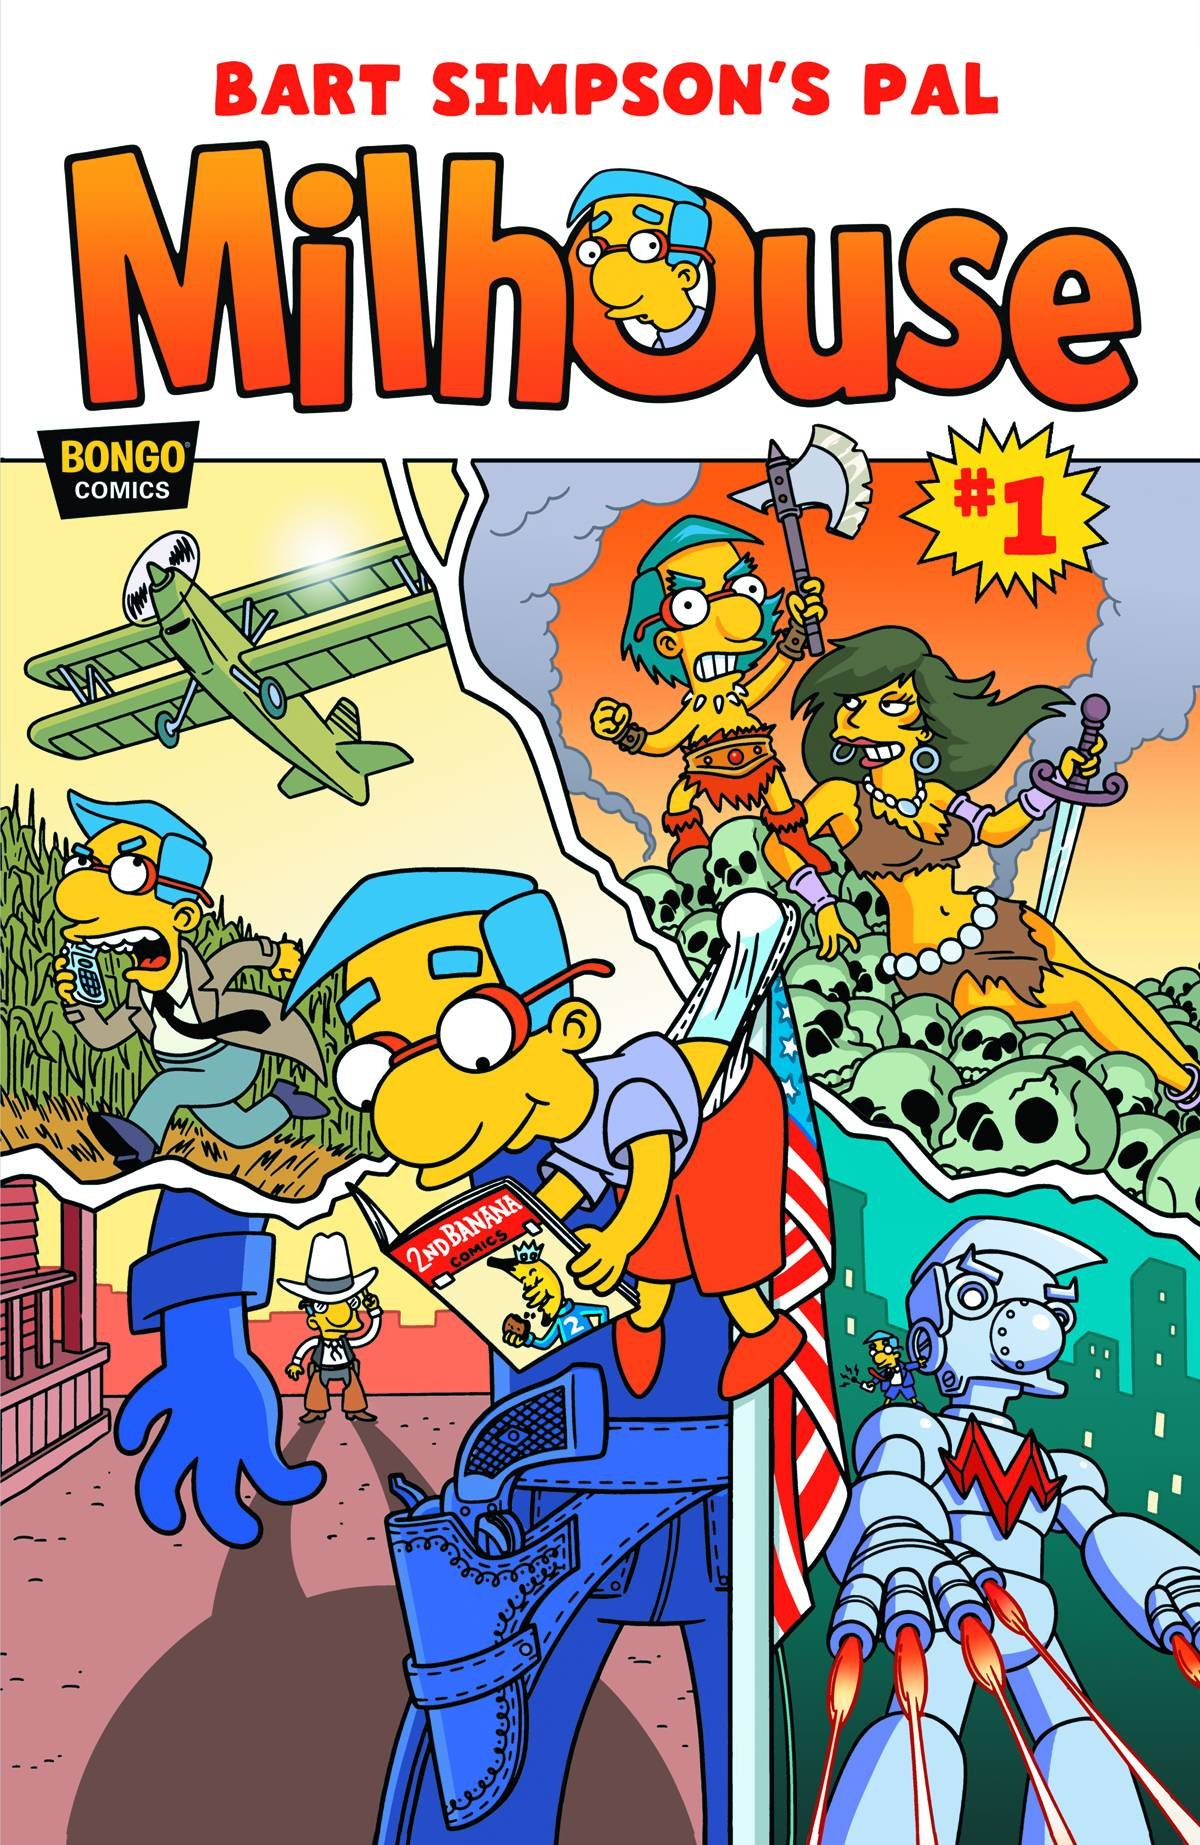 Bart Simpsons Pal Milhouse 1 Pat Mcgreal And Gail Simone Amazon